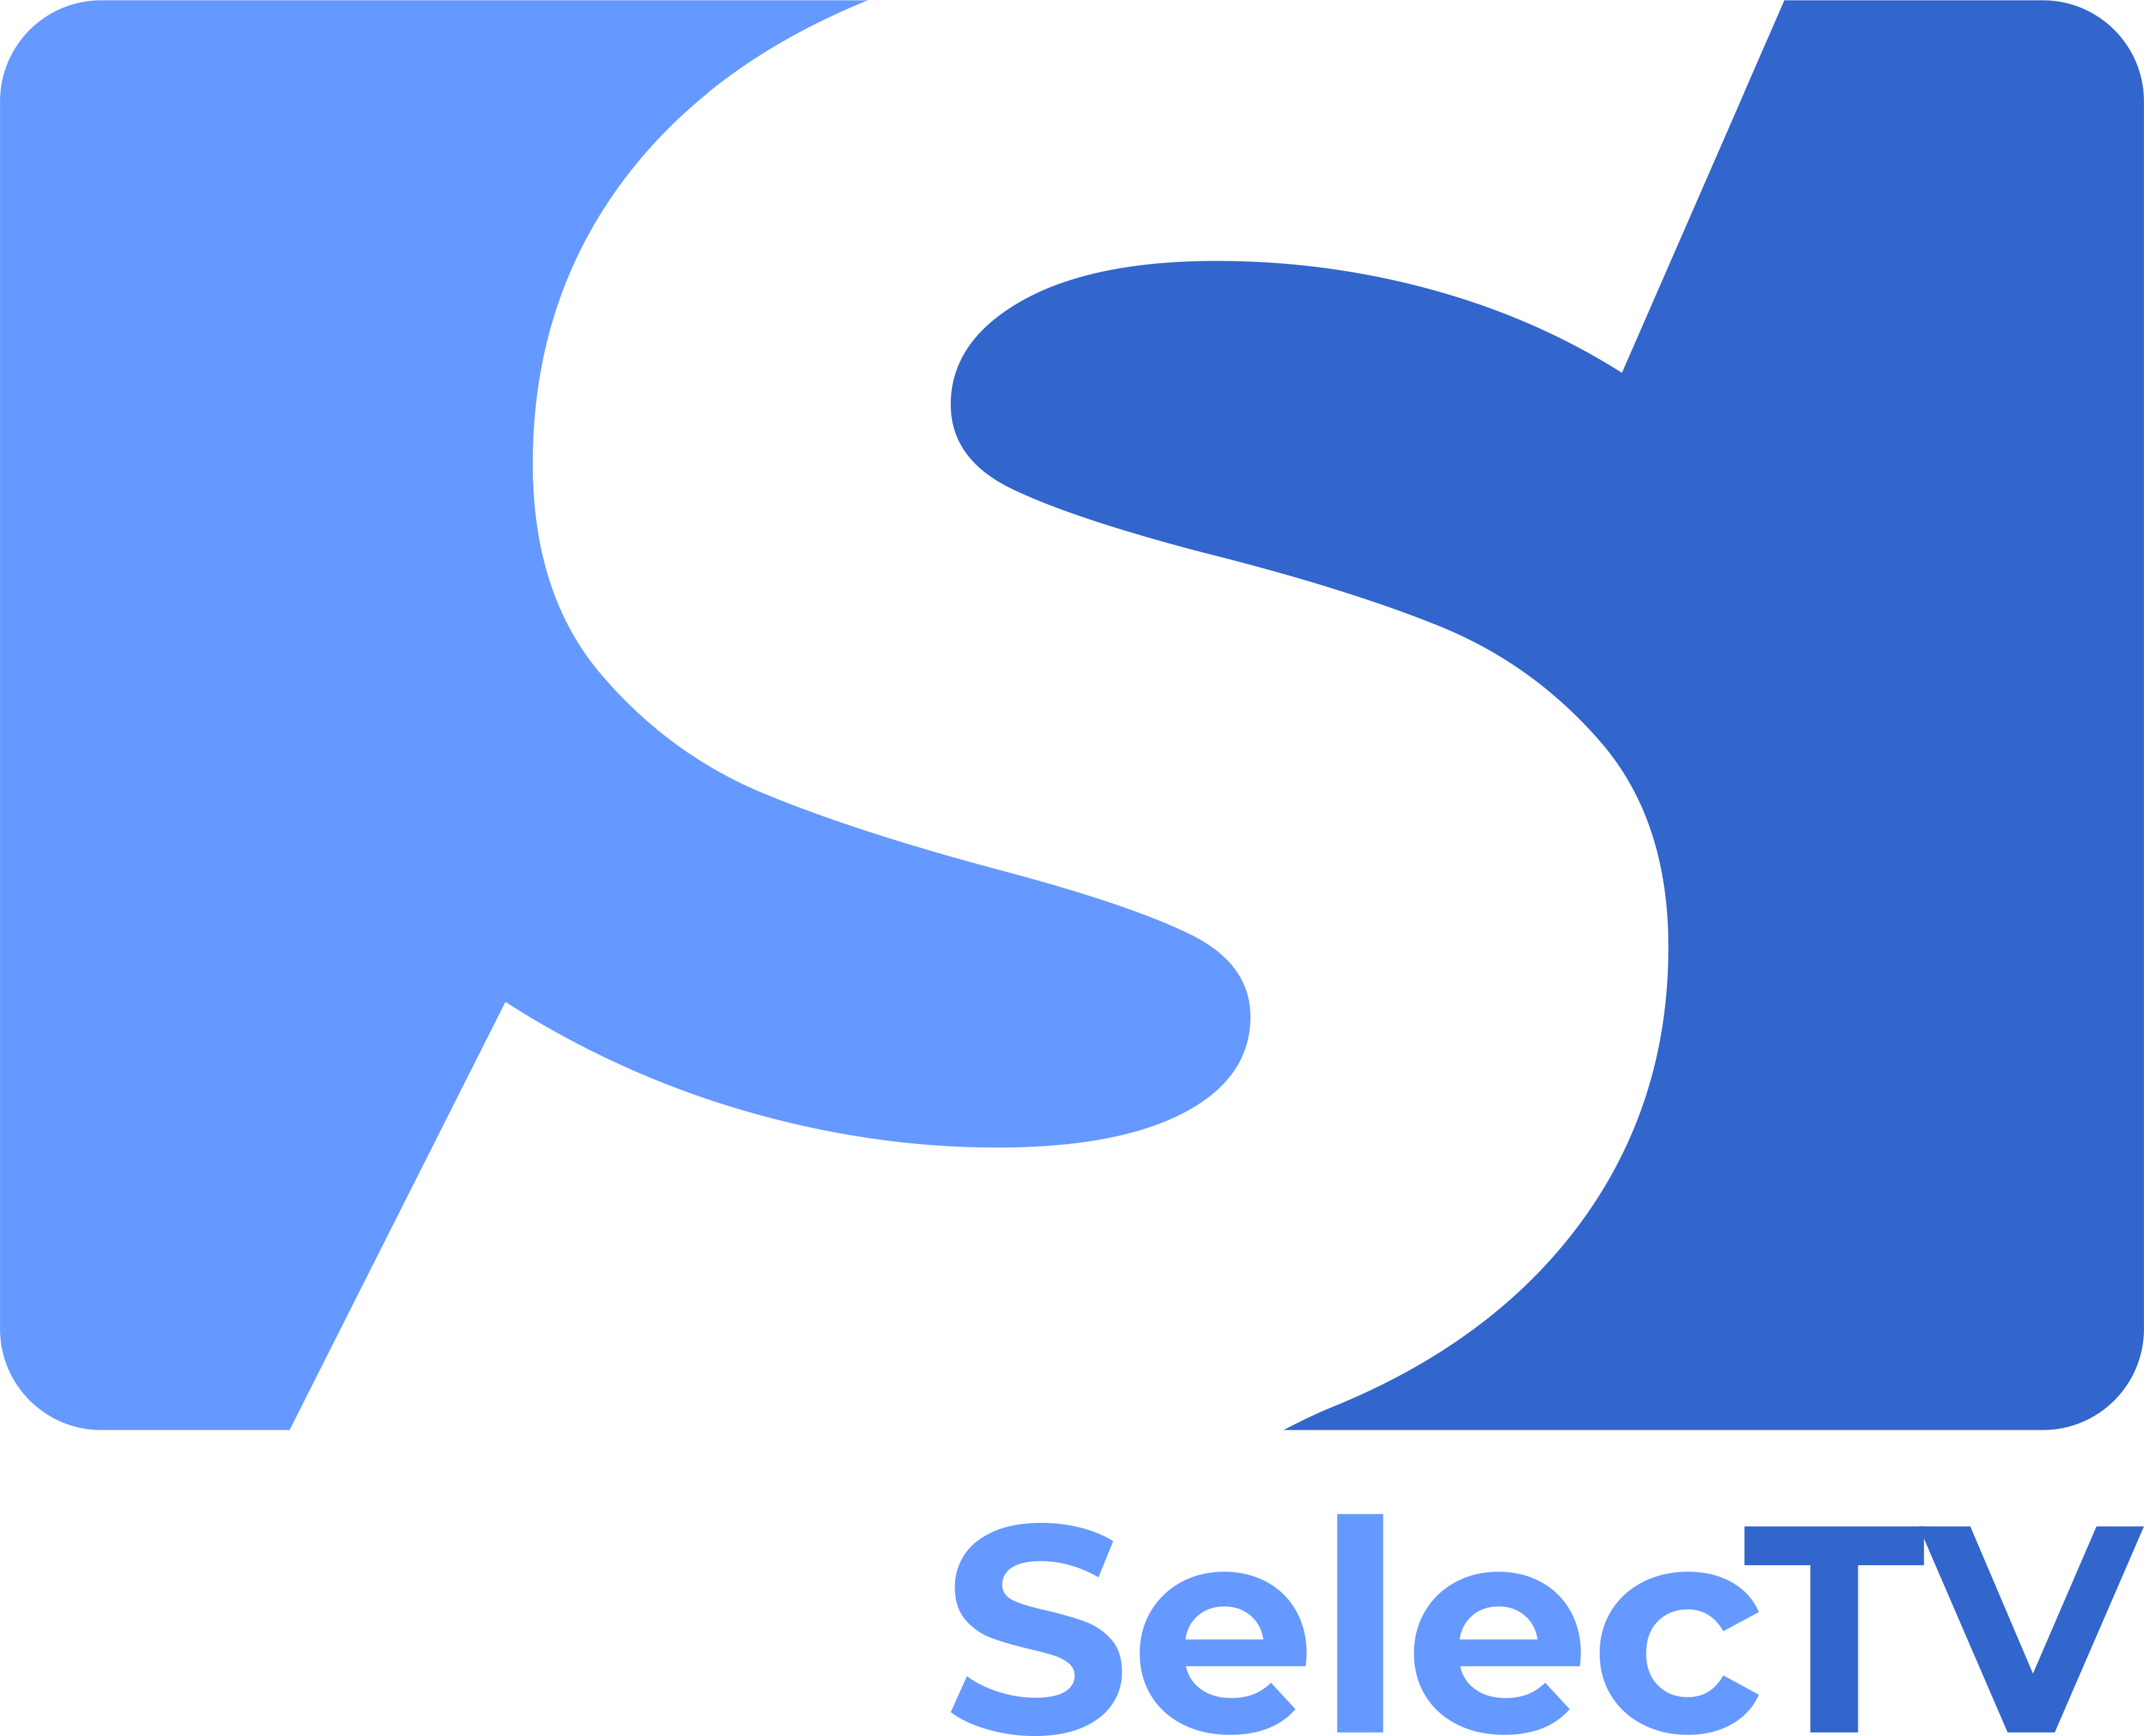 SelecTV - Simply the BEST IPTV